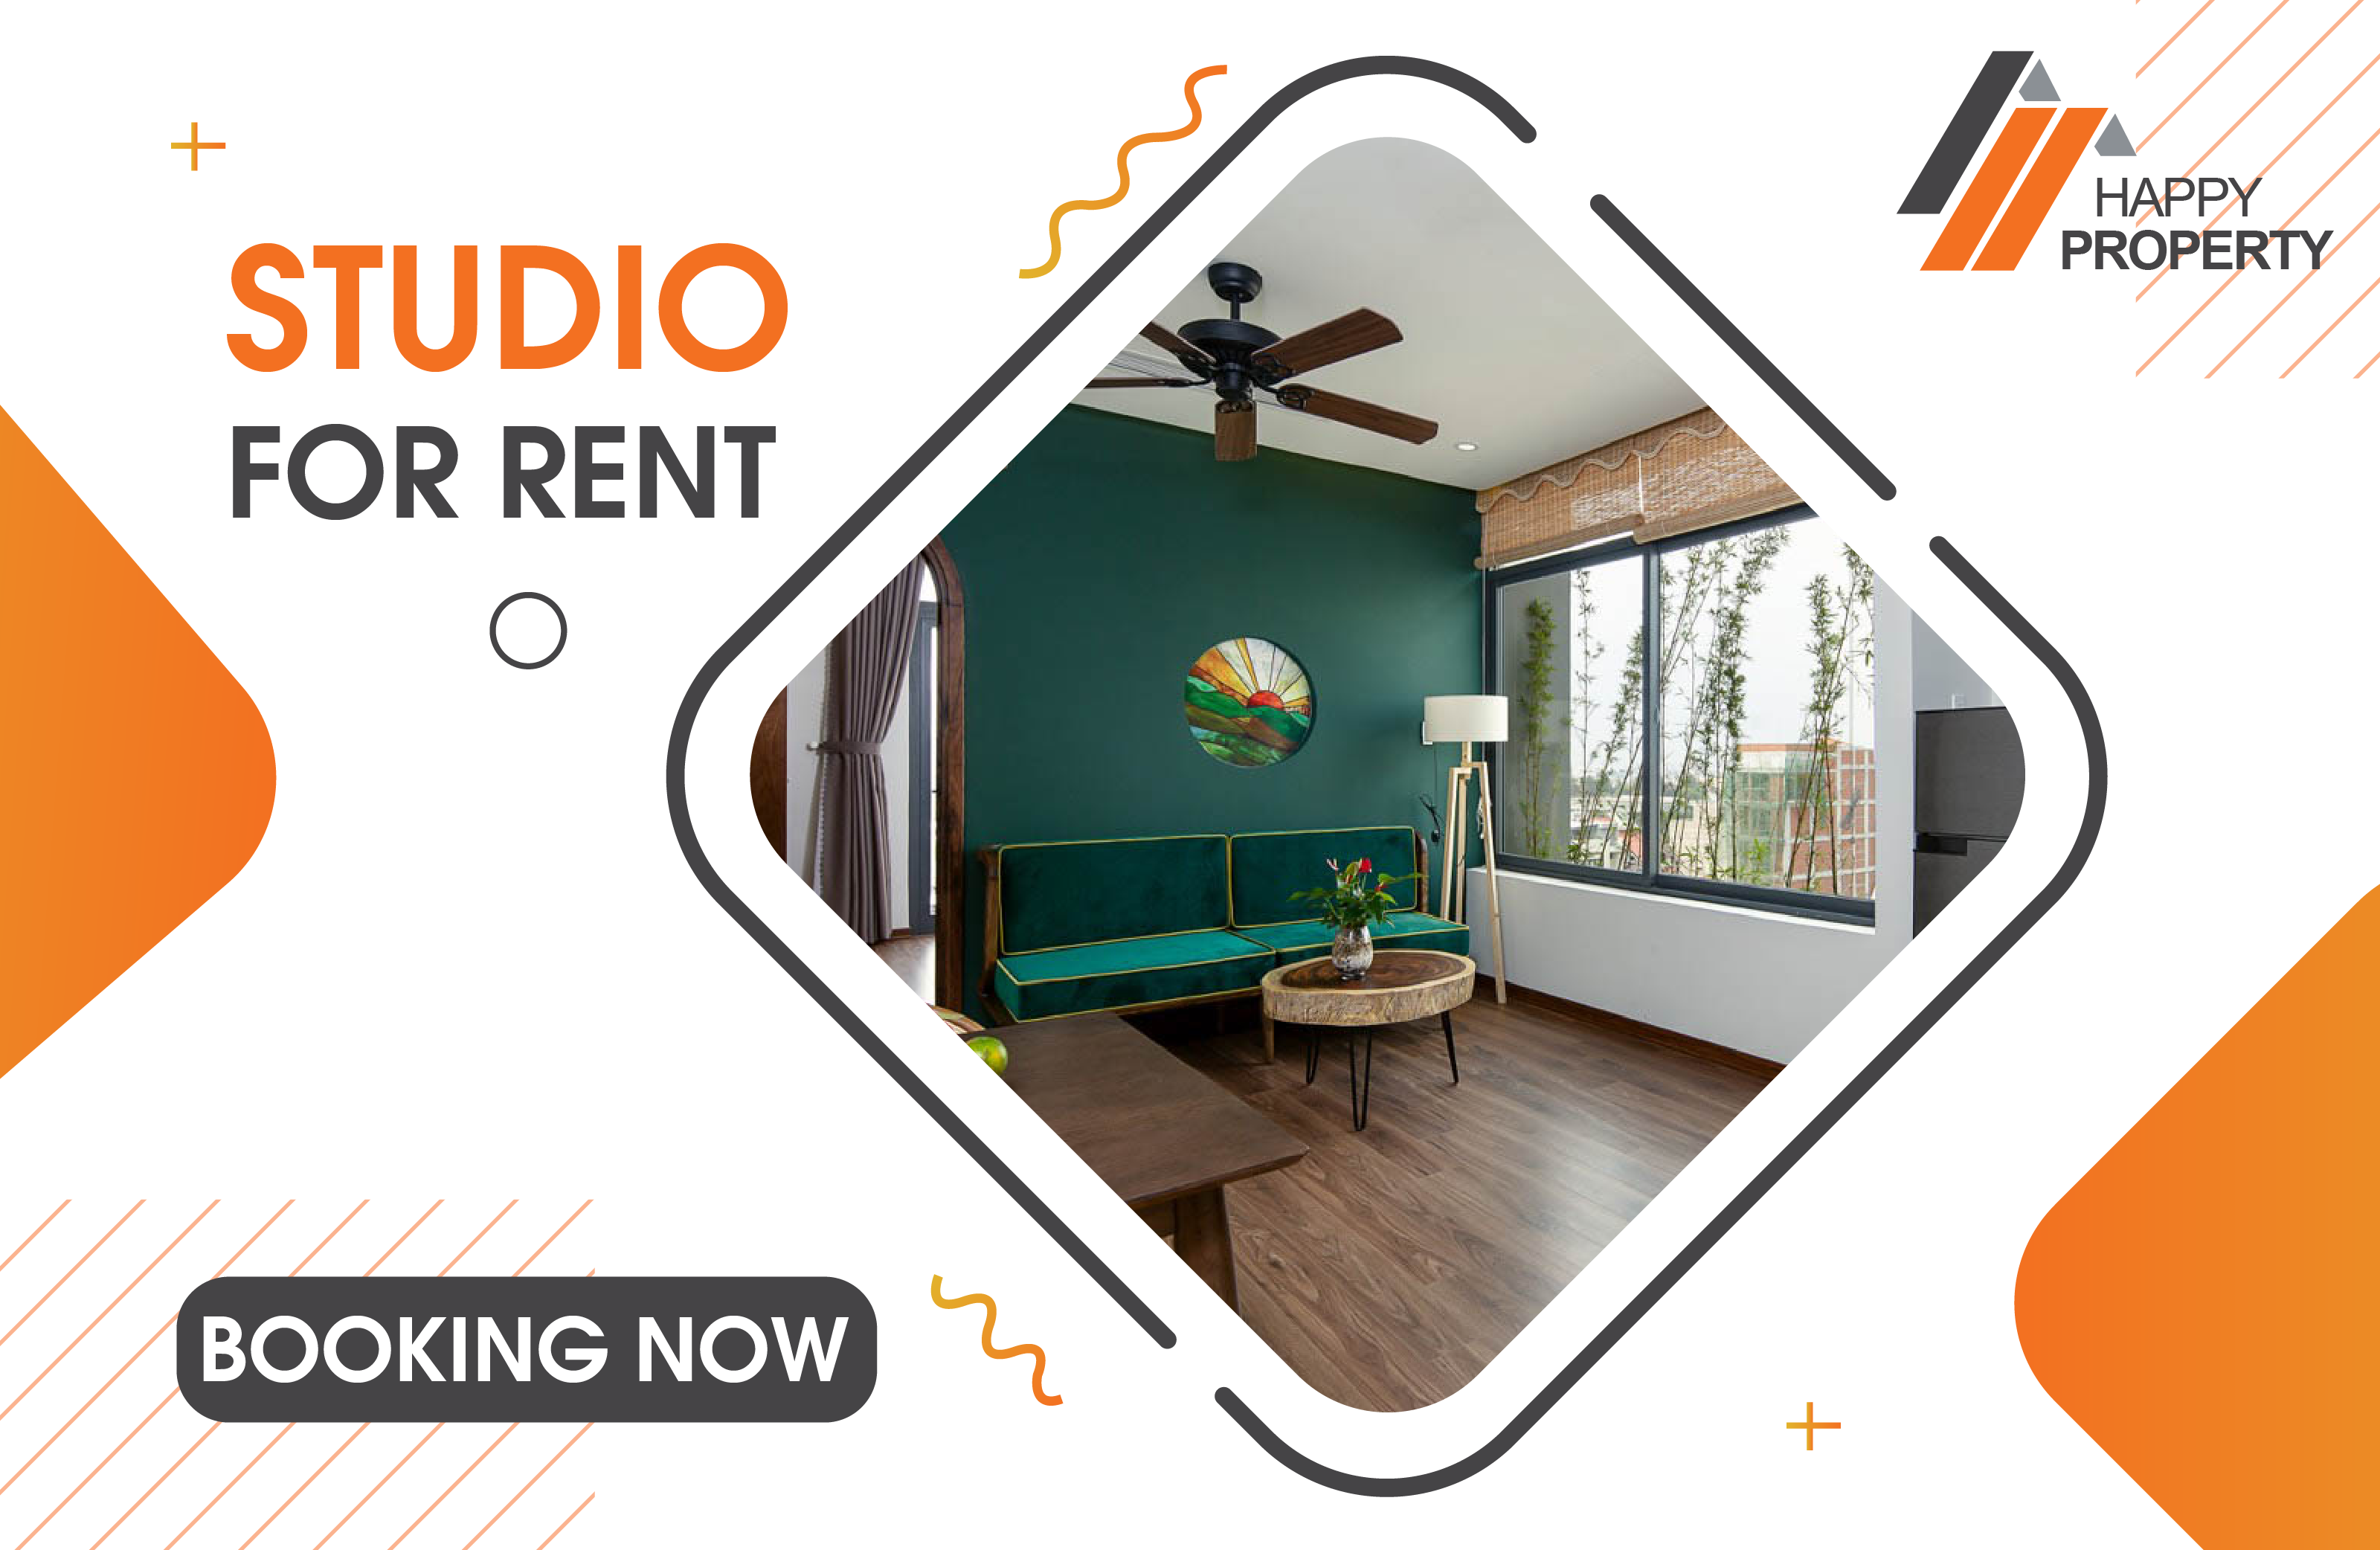 1 Bedroom Tropical House Apartment For Rent – ST15